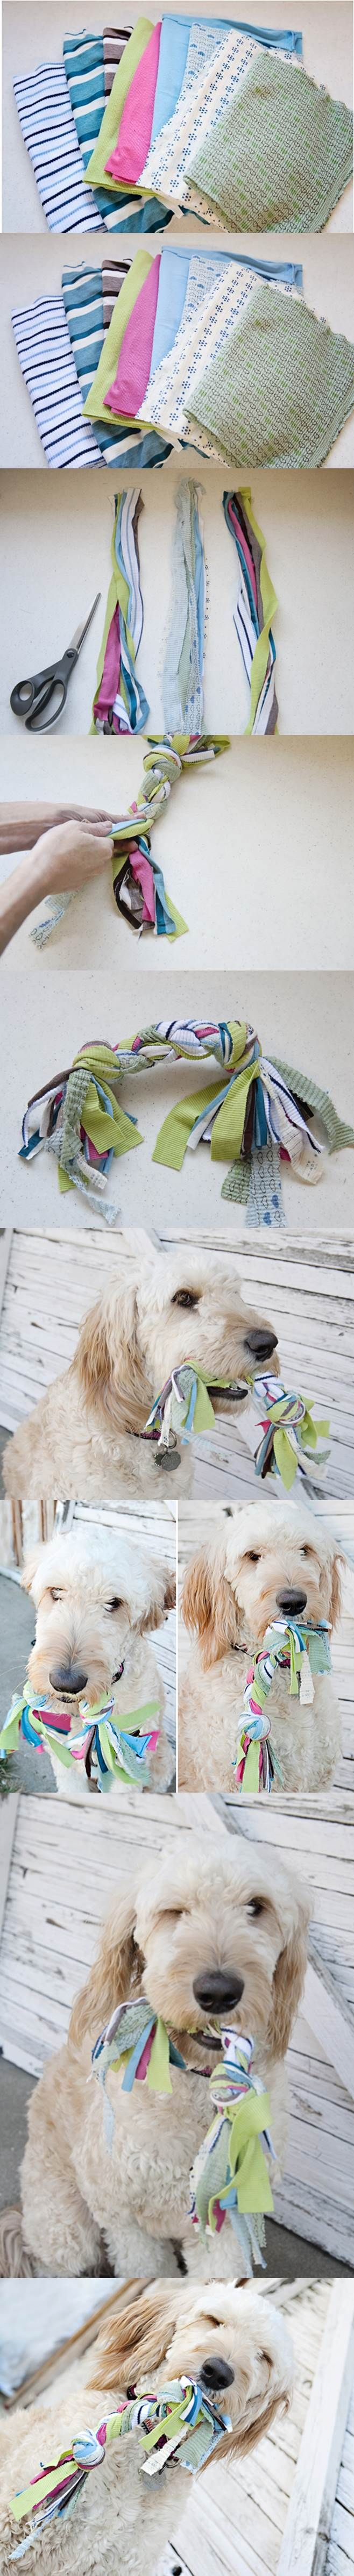 The 25 best Knitting dog toys ideas on Pinterest